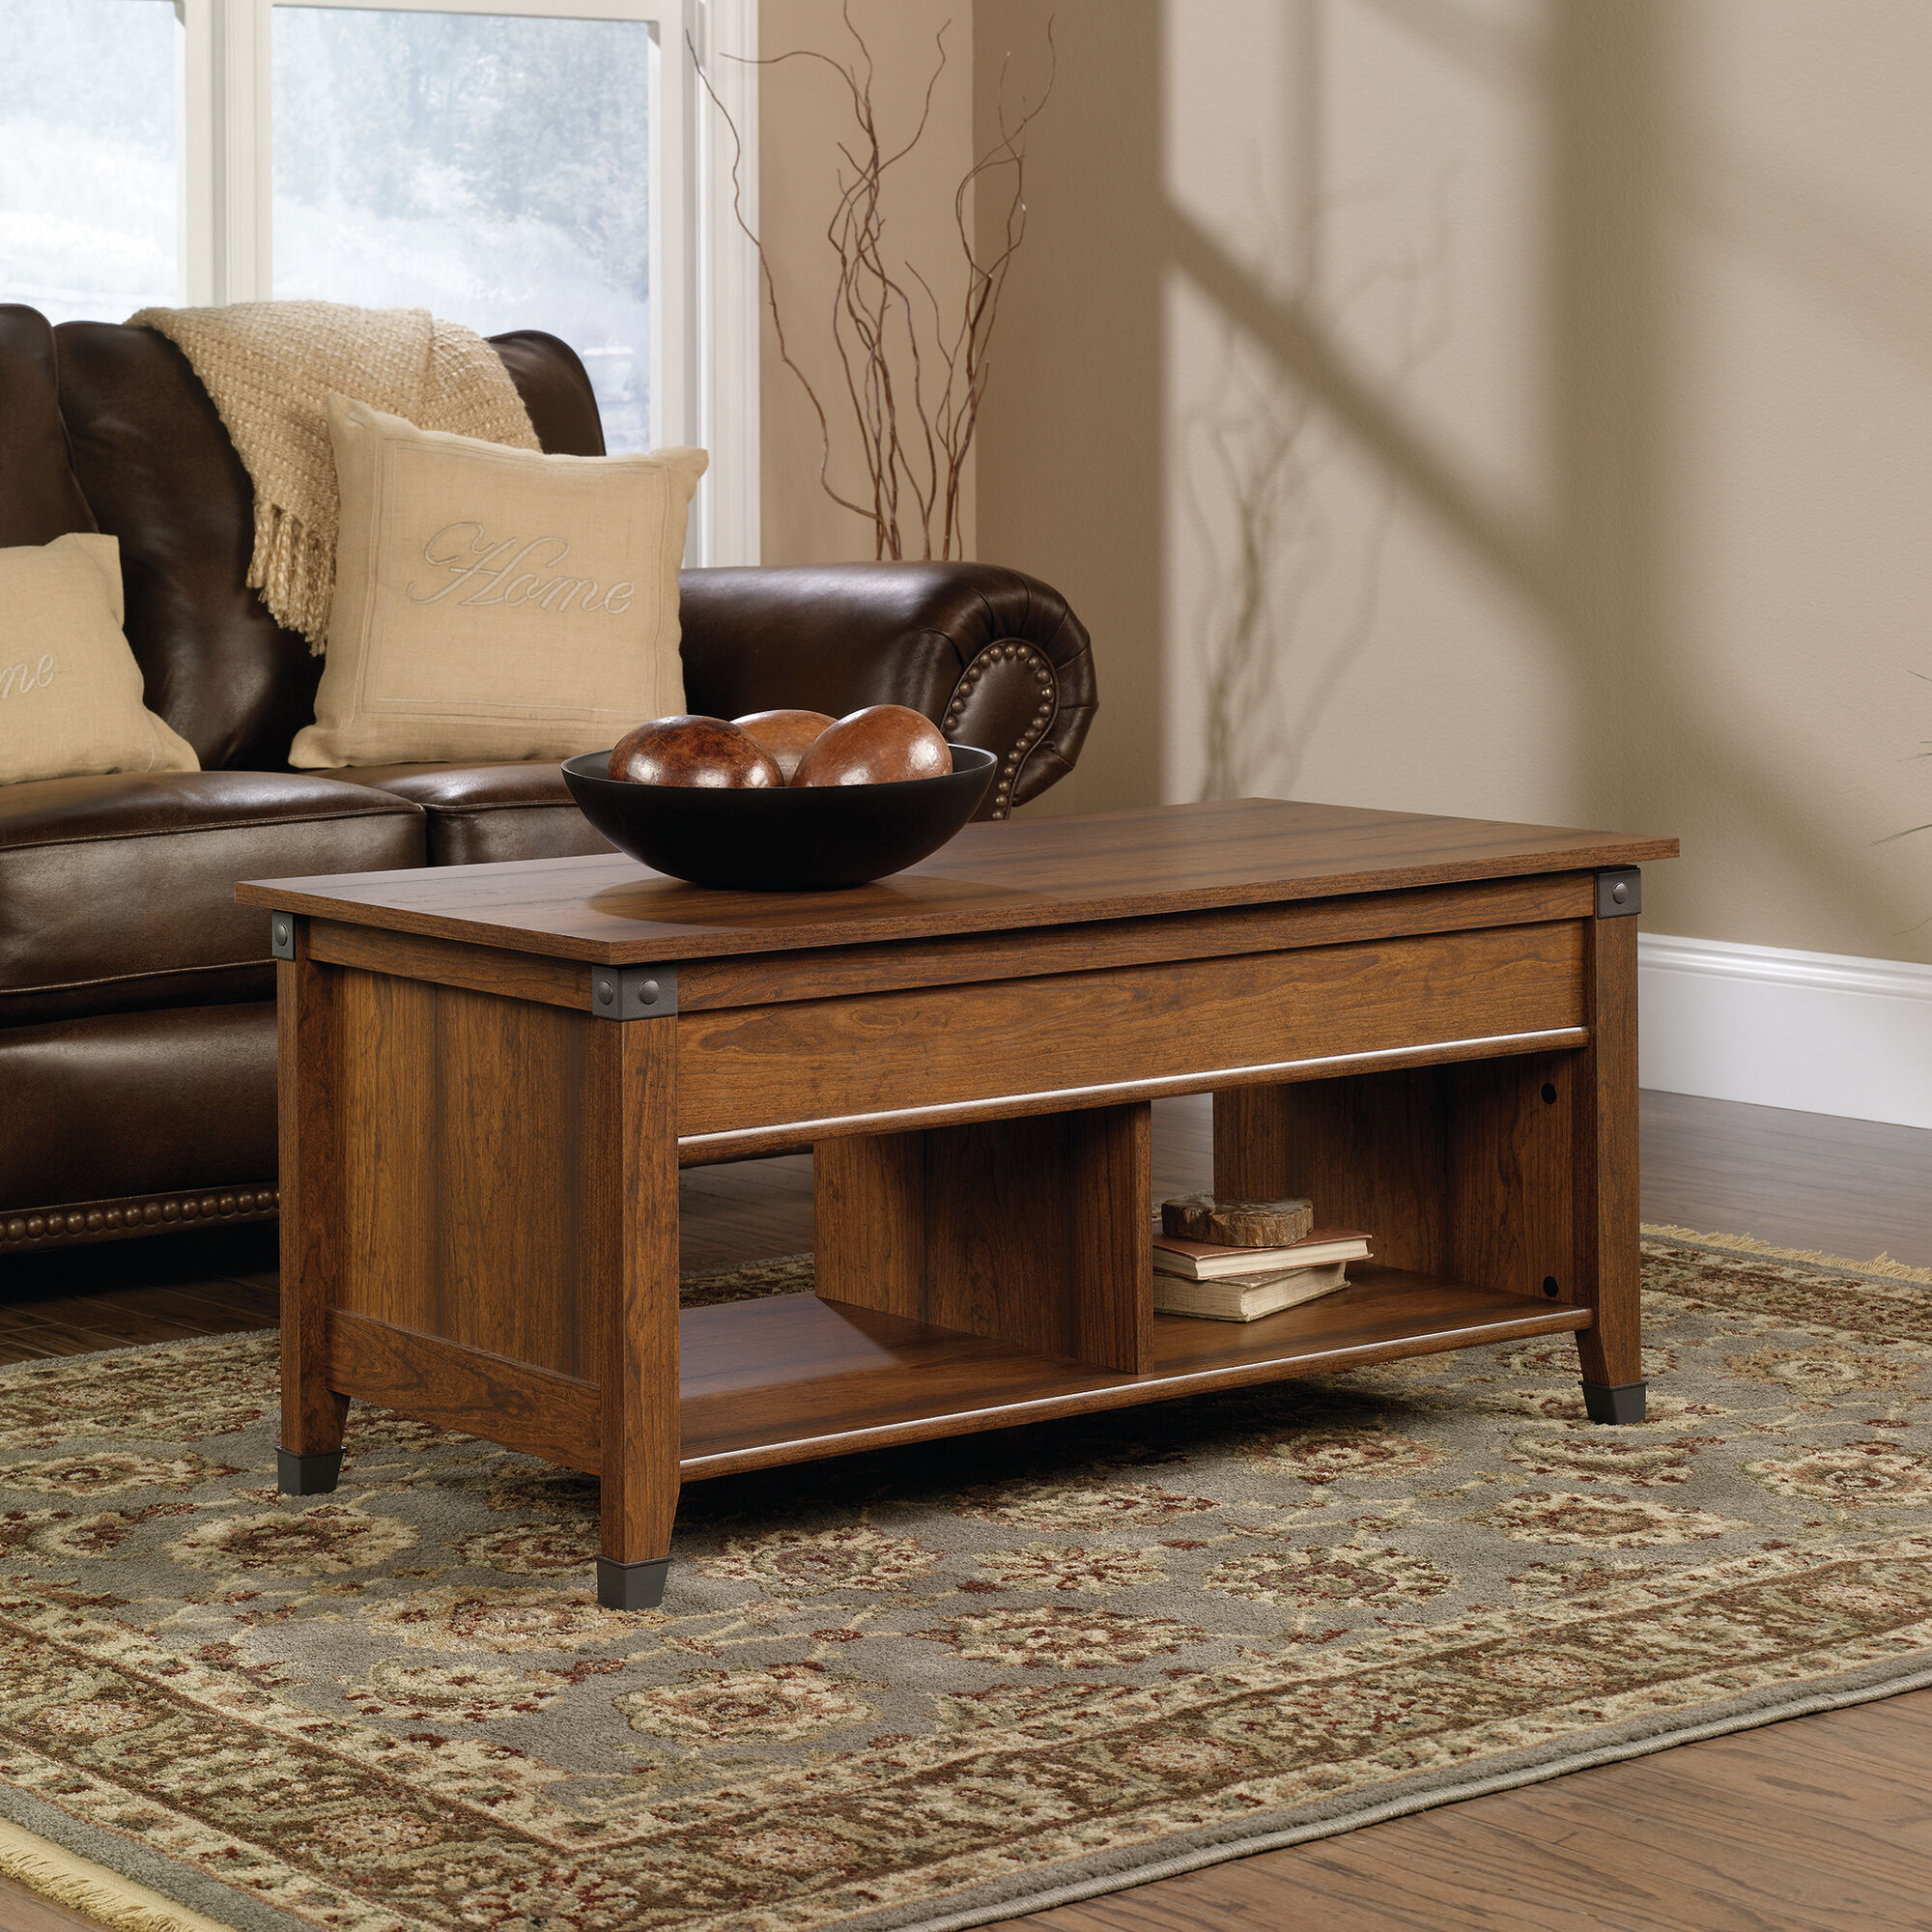 Rectangular lift top transitional coffee table in washington cherry mathis brothers furniture